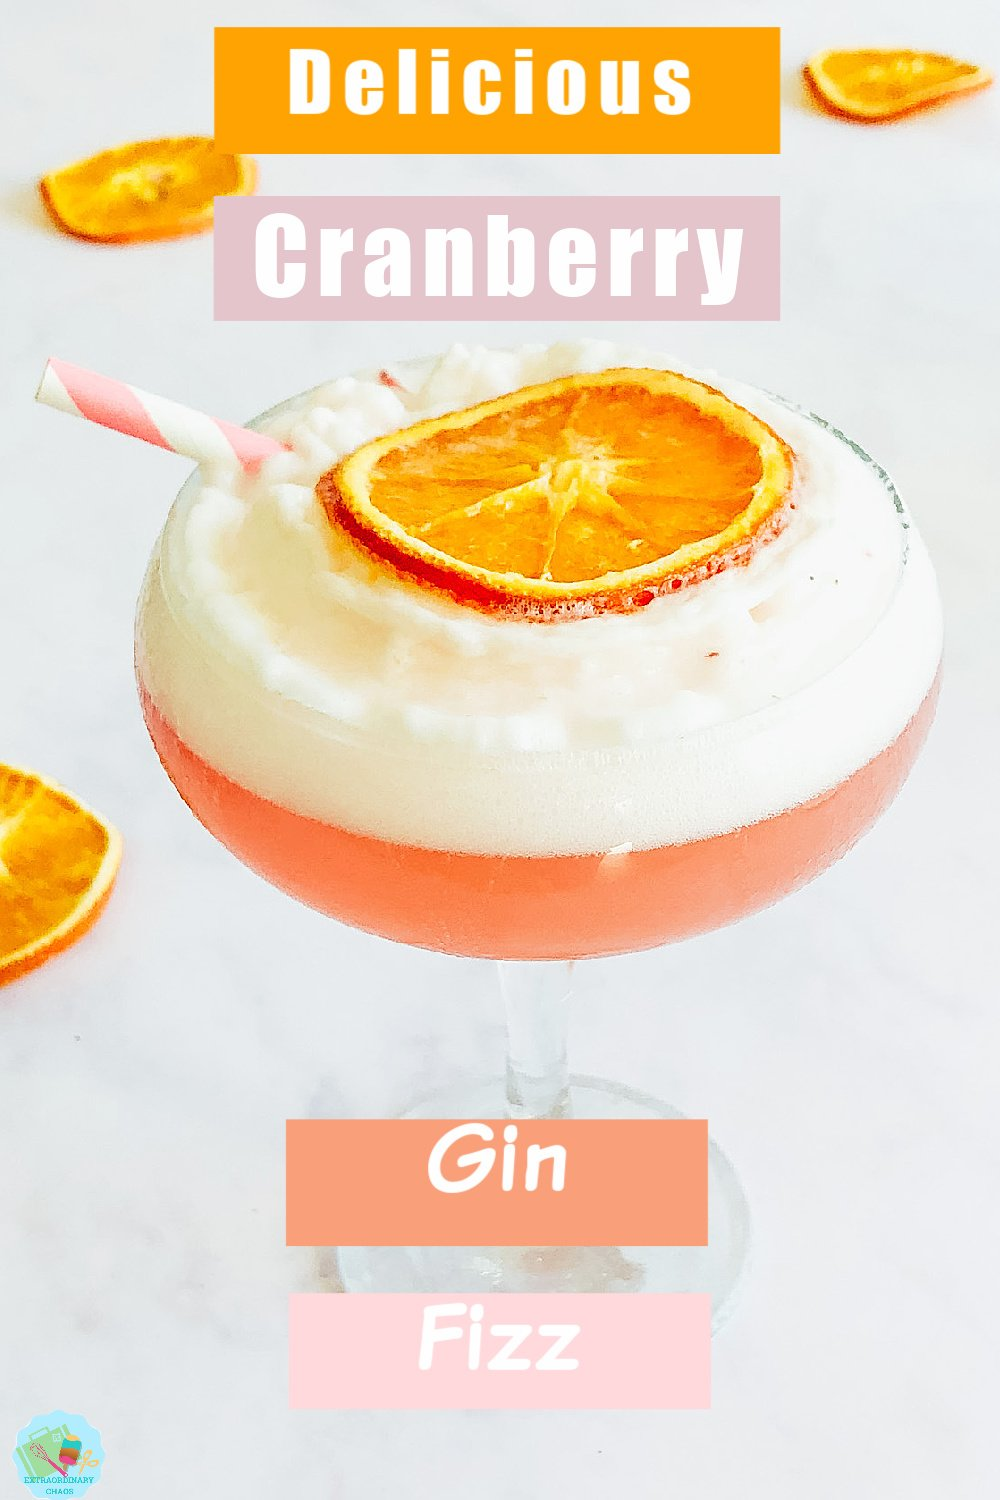 How to make a Cranberry Gin Fizz Cocktail